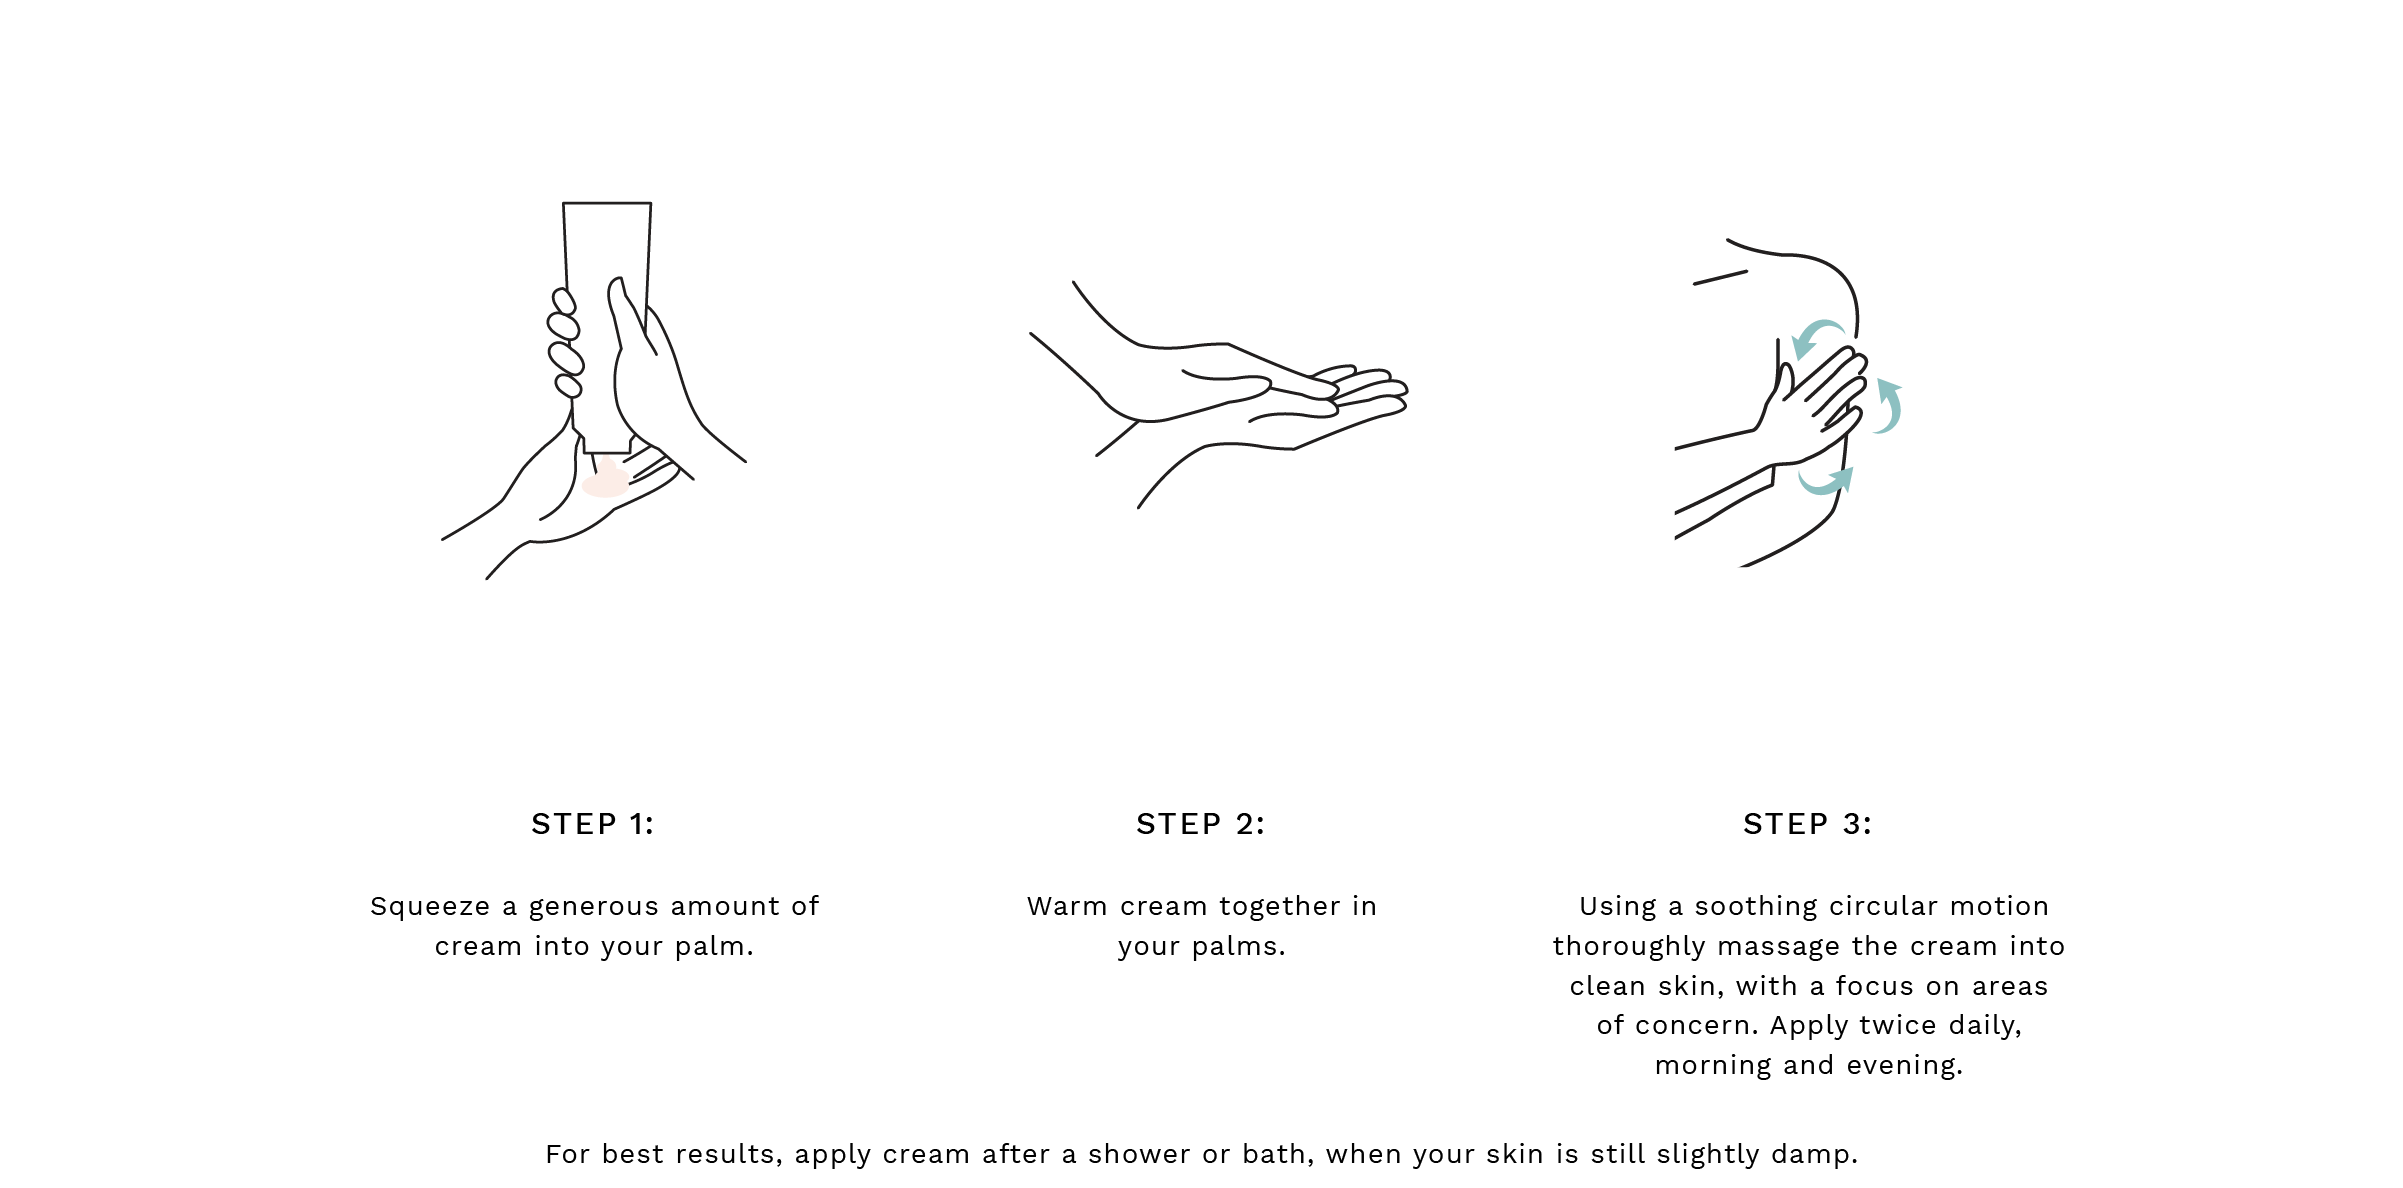 Step 1: Squeeze a generous amount of the polish into your palm. Step 2: Warm cream together in your palms.  Step 3: Rinse off with warm water, lightly pat excess water away with a clean towel then apply body cream or oil while the skin is still slightly damp. For best results, use 1-3 times per week. For best results, apply cream after a shower or bath, when your skin is still slightly damp.